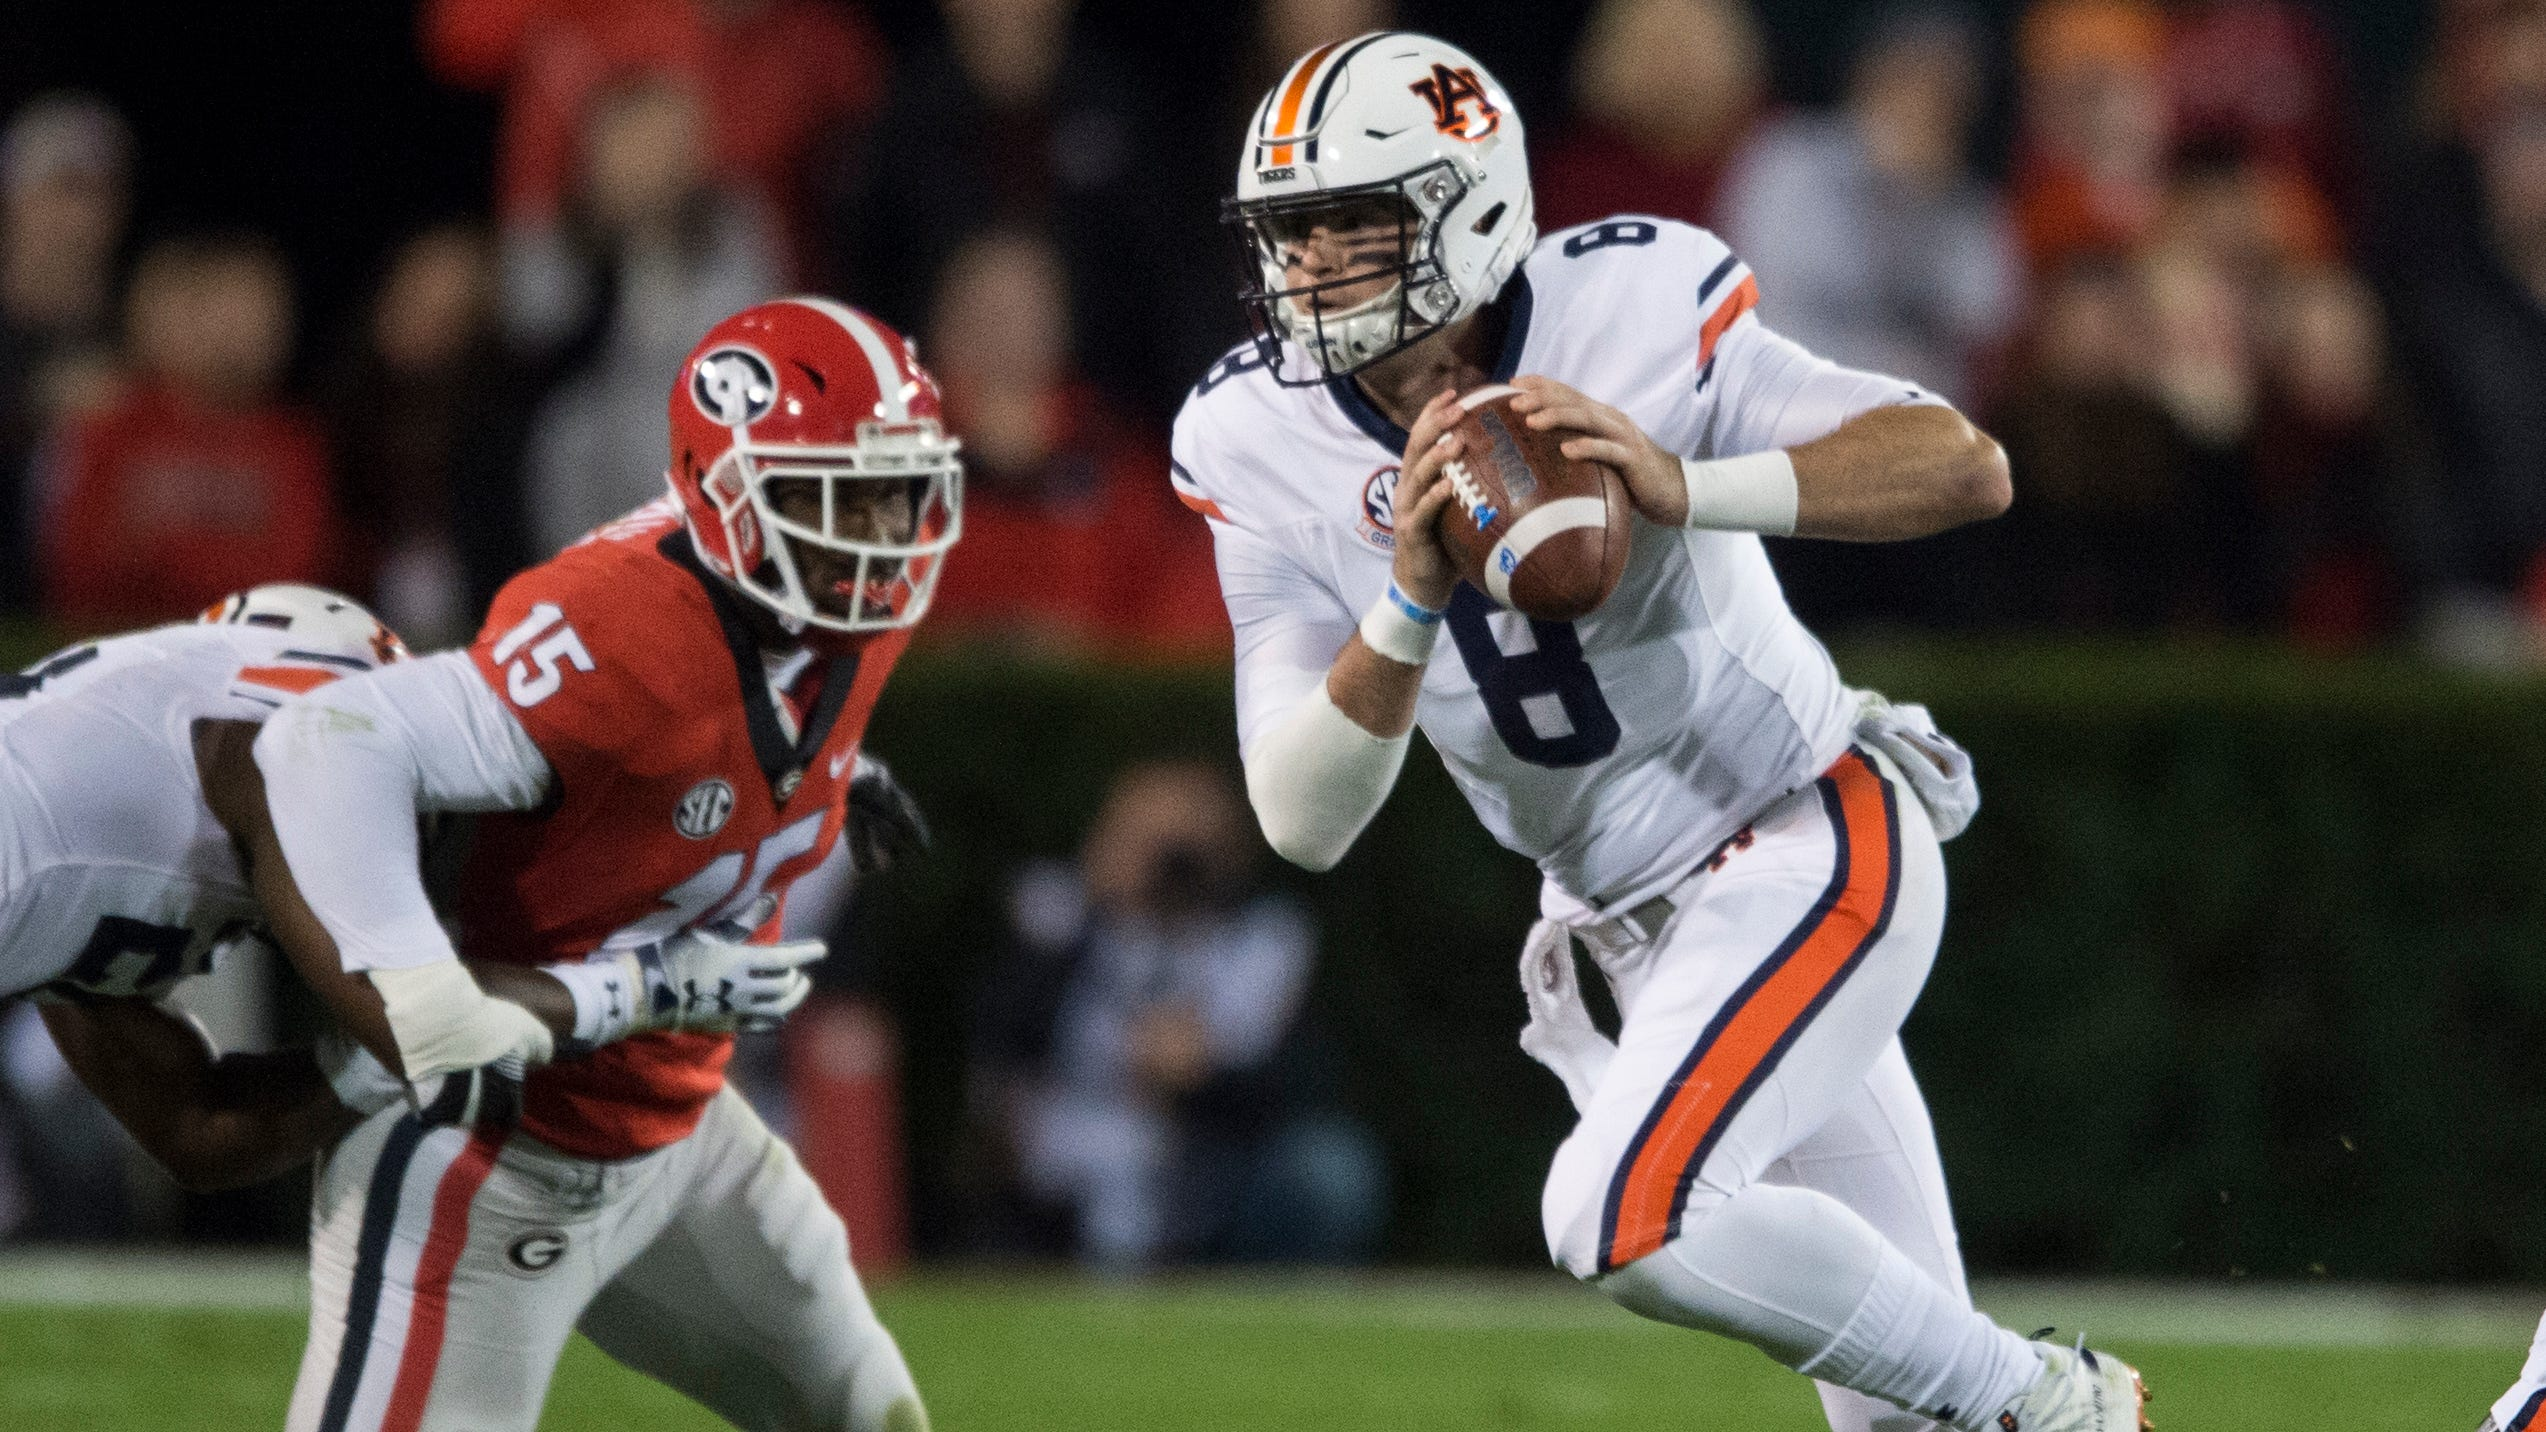 Failure of Stidham to connect with Whitlow altered game's momentum